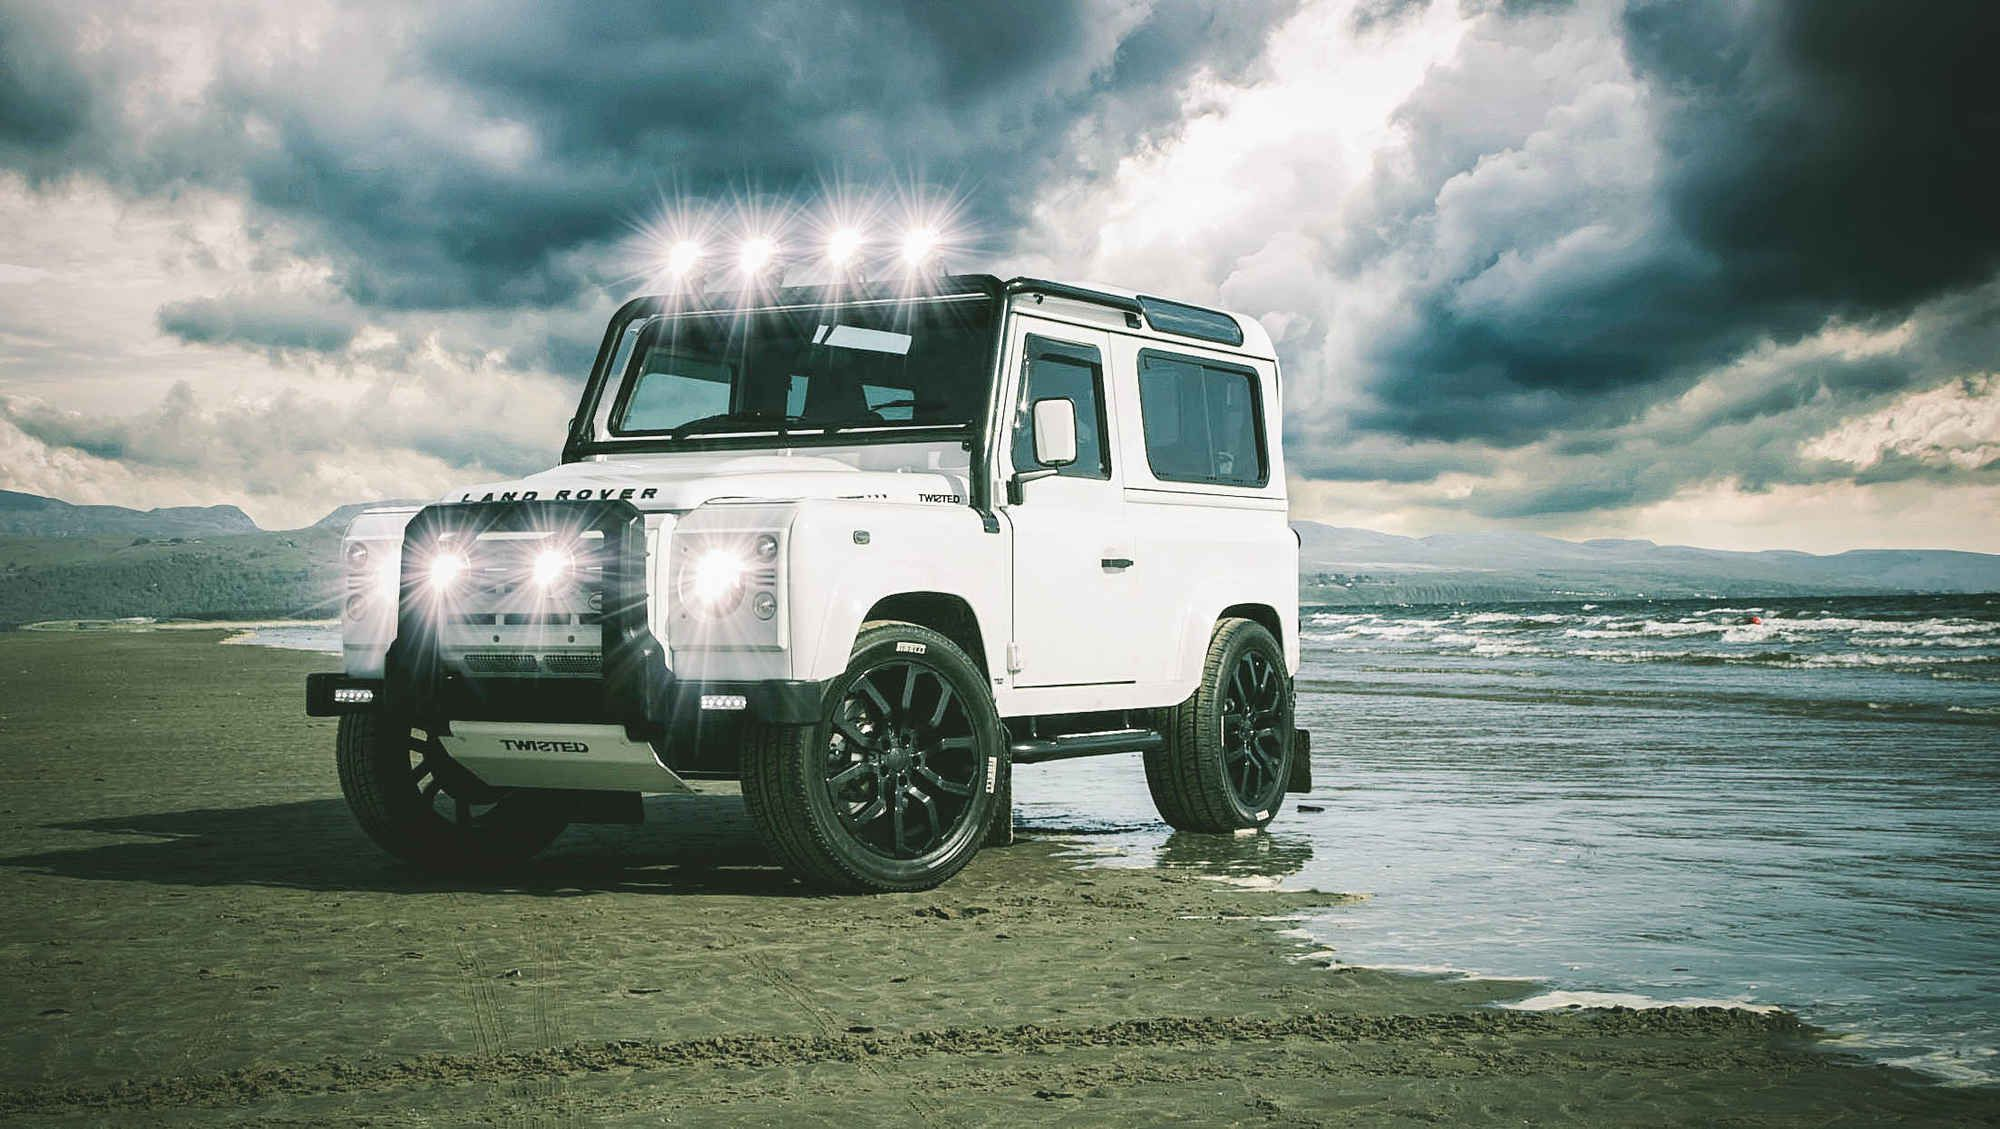 The Alpine Defender 90 From Twisted Performance Land Rover